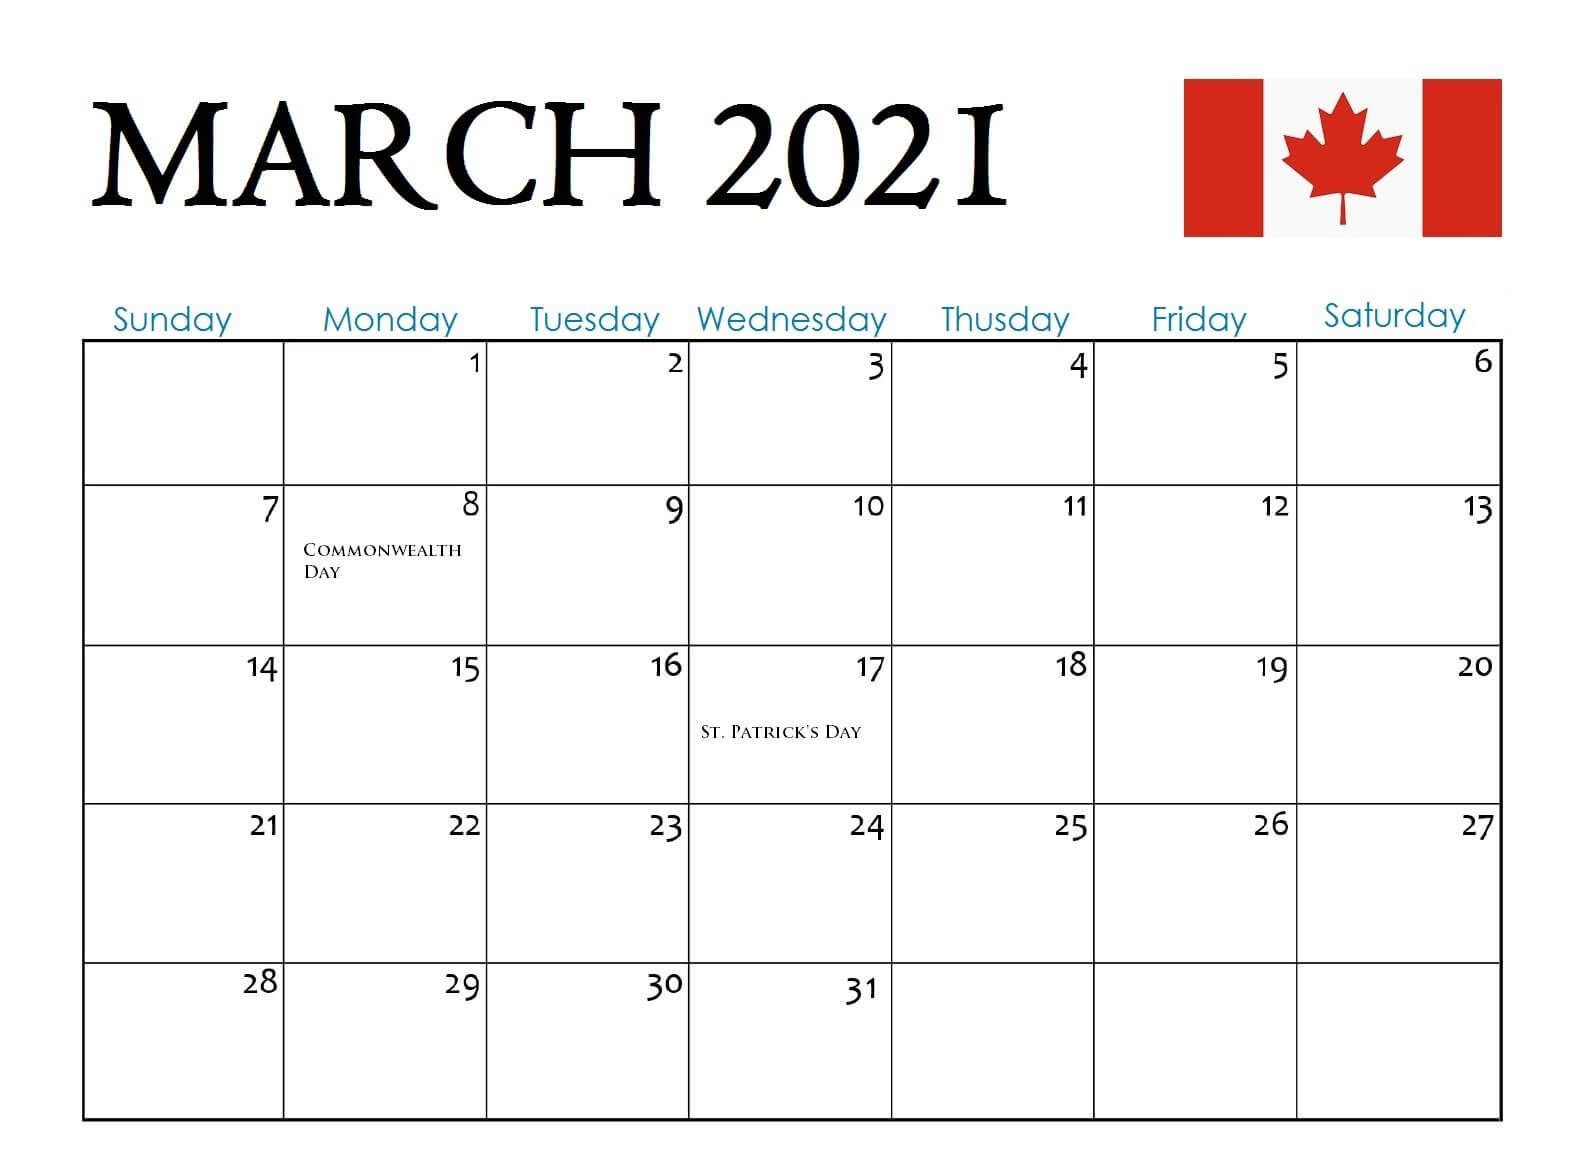 March 2021 Calendar with Holidays Canada